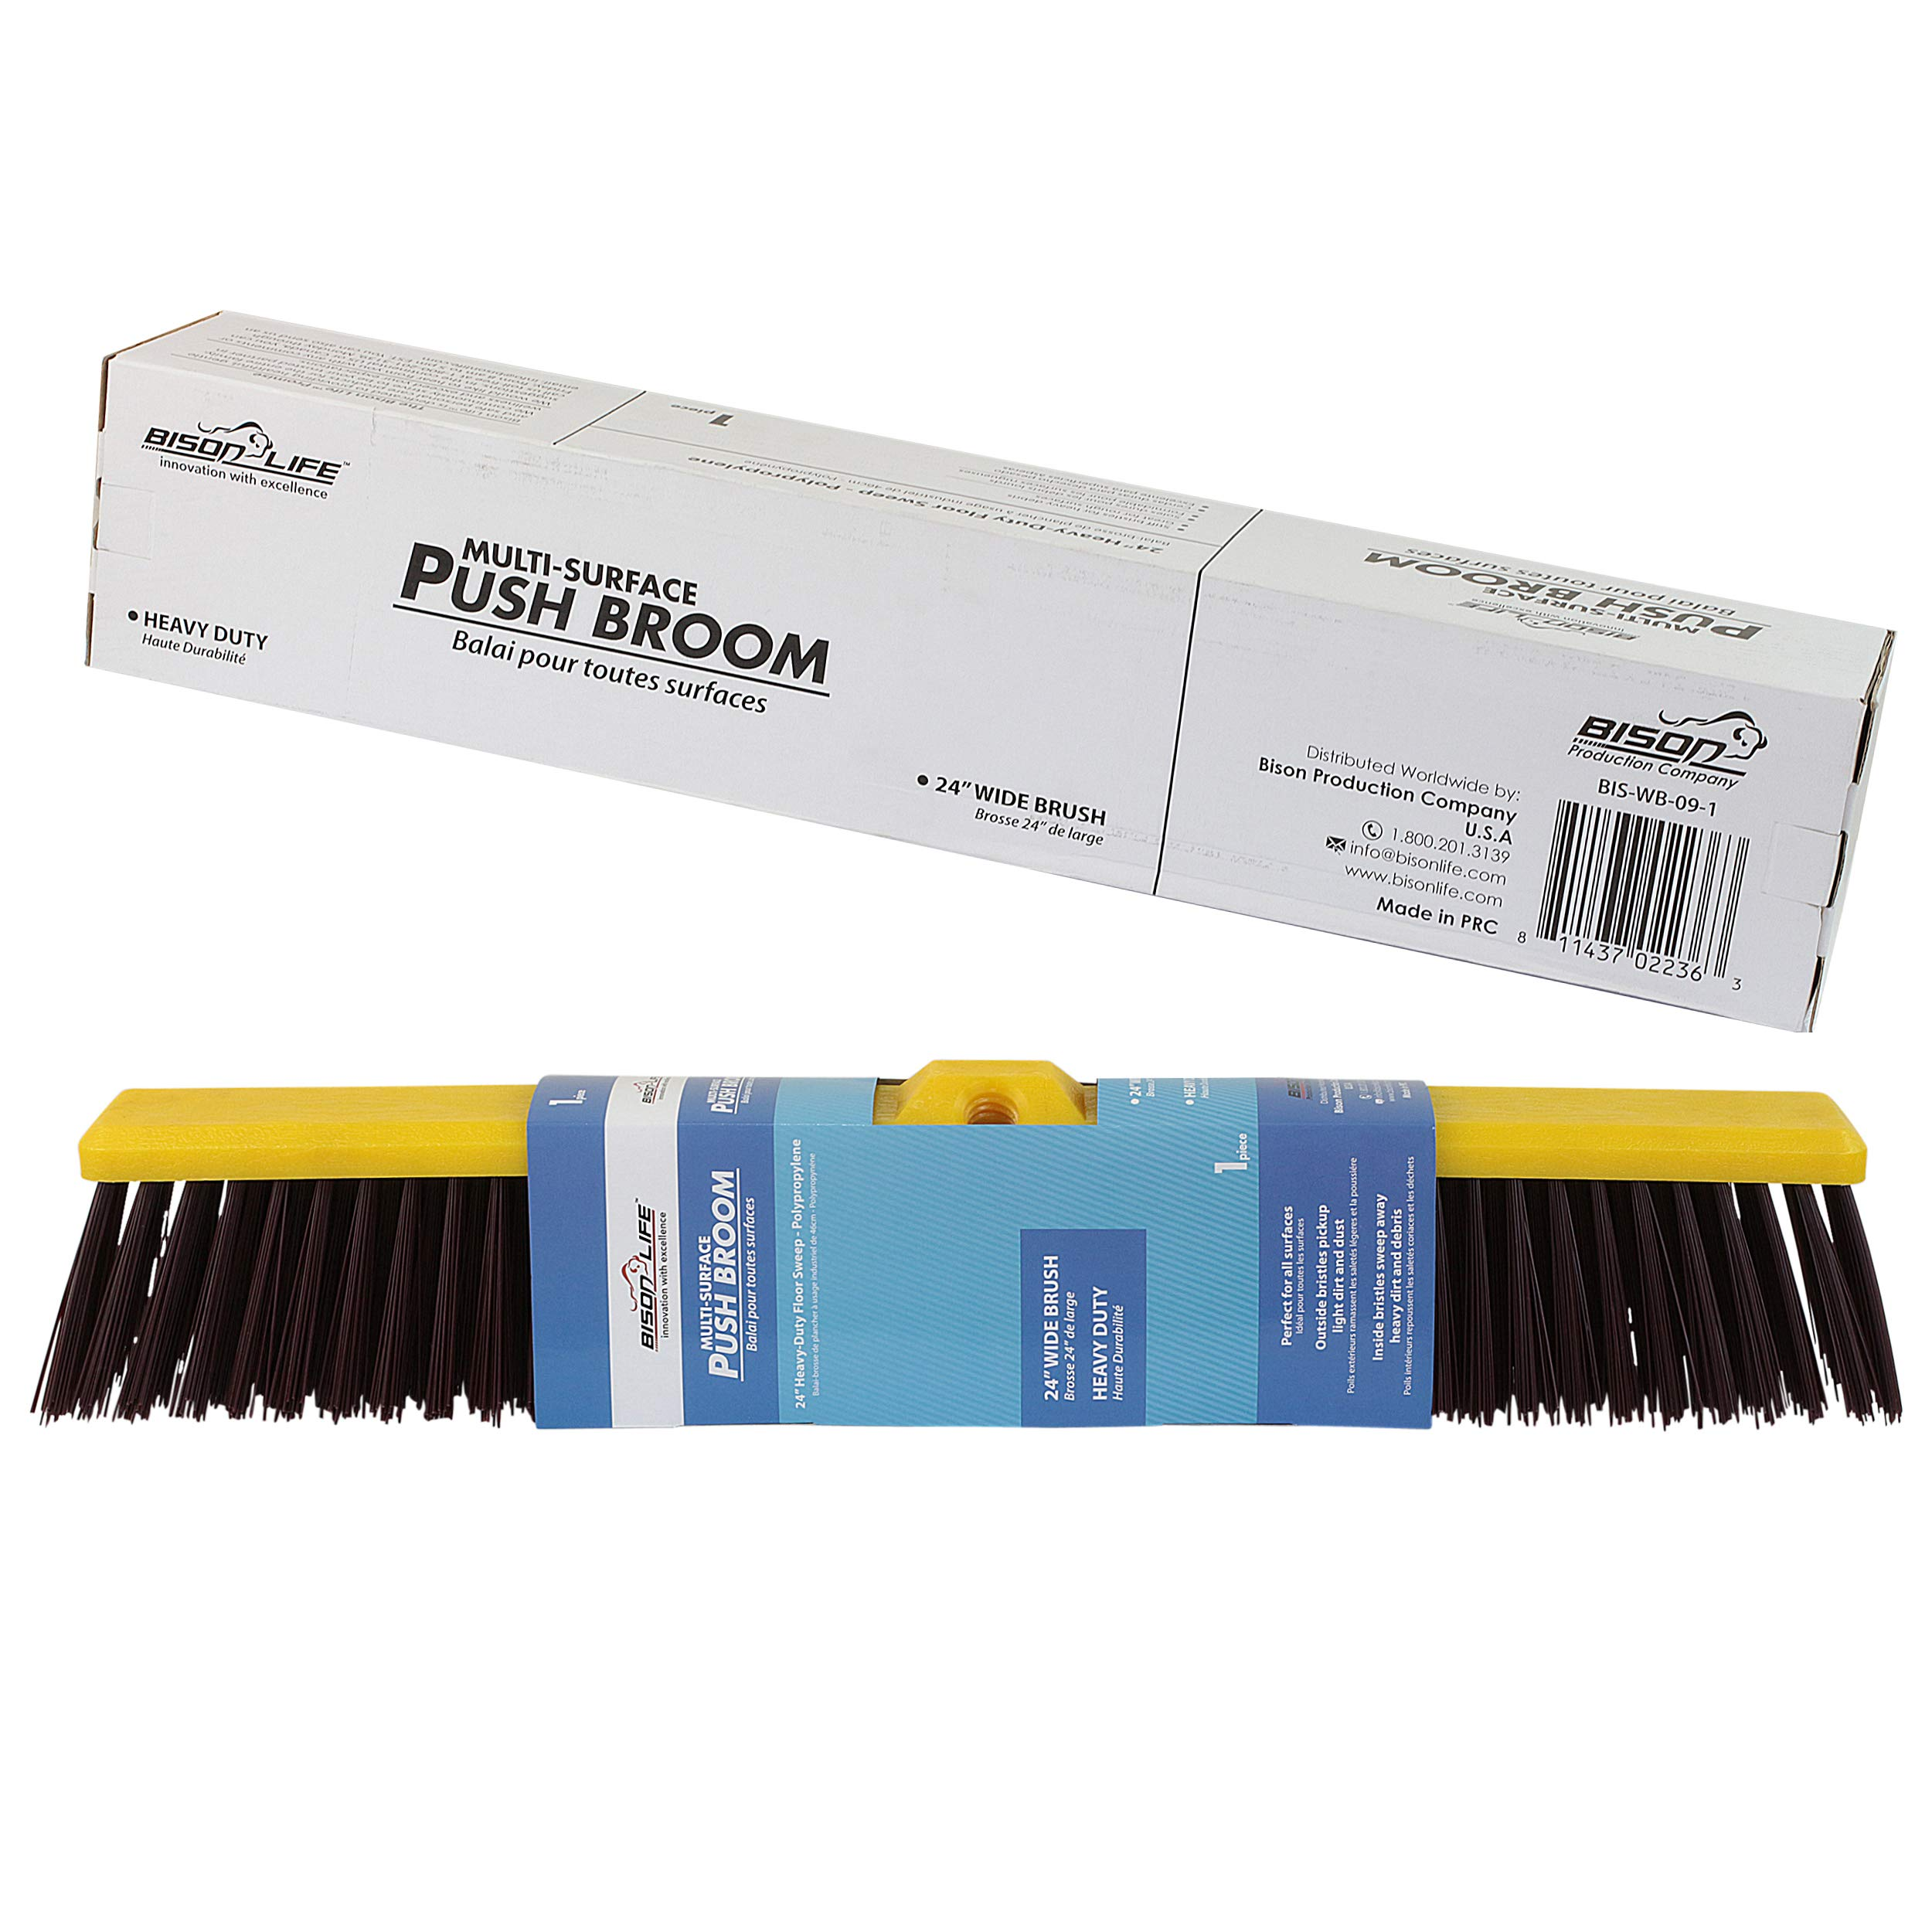 Multi Surface Push Broom | Coarse Polypropylene and Polystyrene Heavy-Duty Floor Sweep Broom (Pack of 12) by BISON LIFE (Image #3)